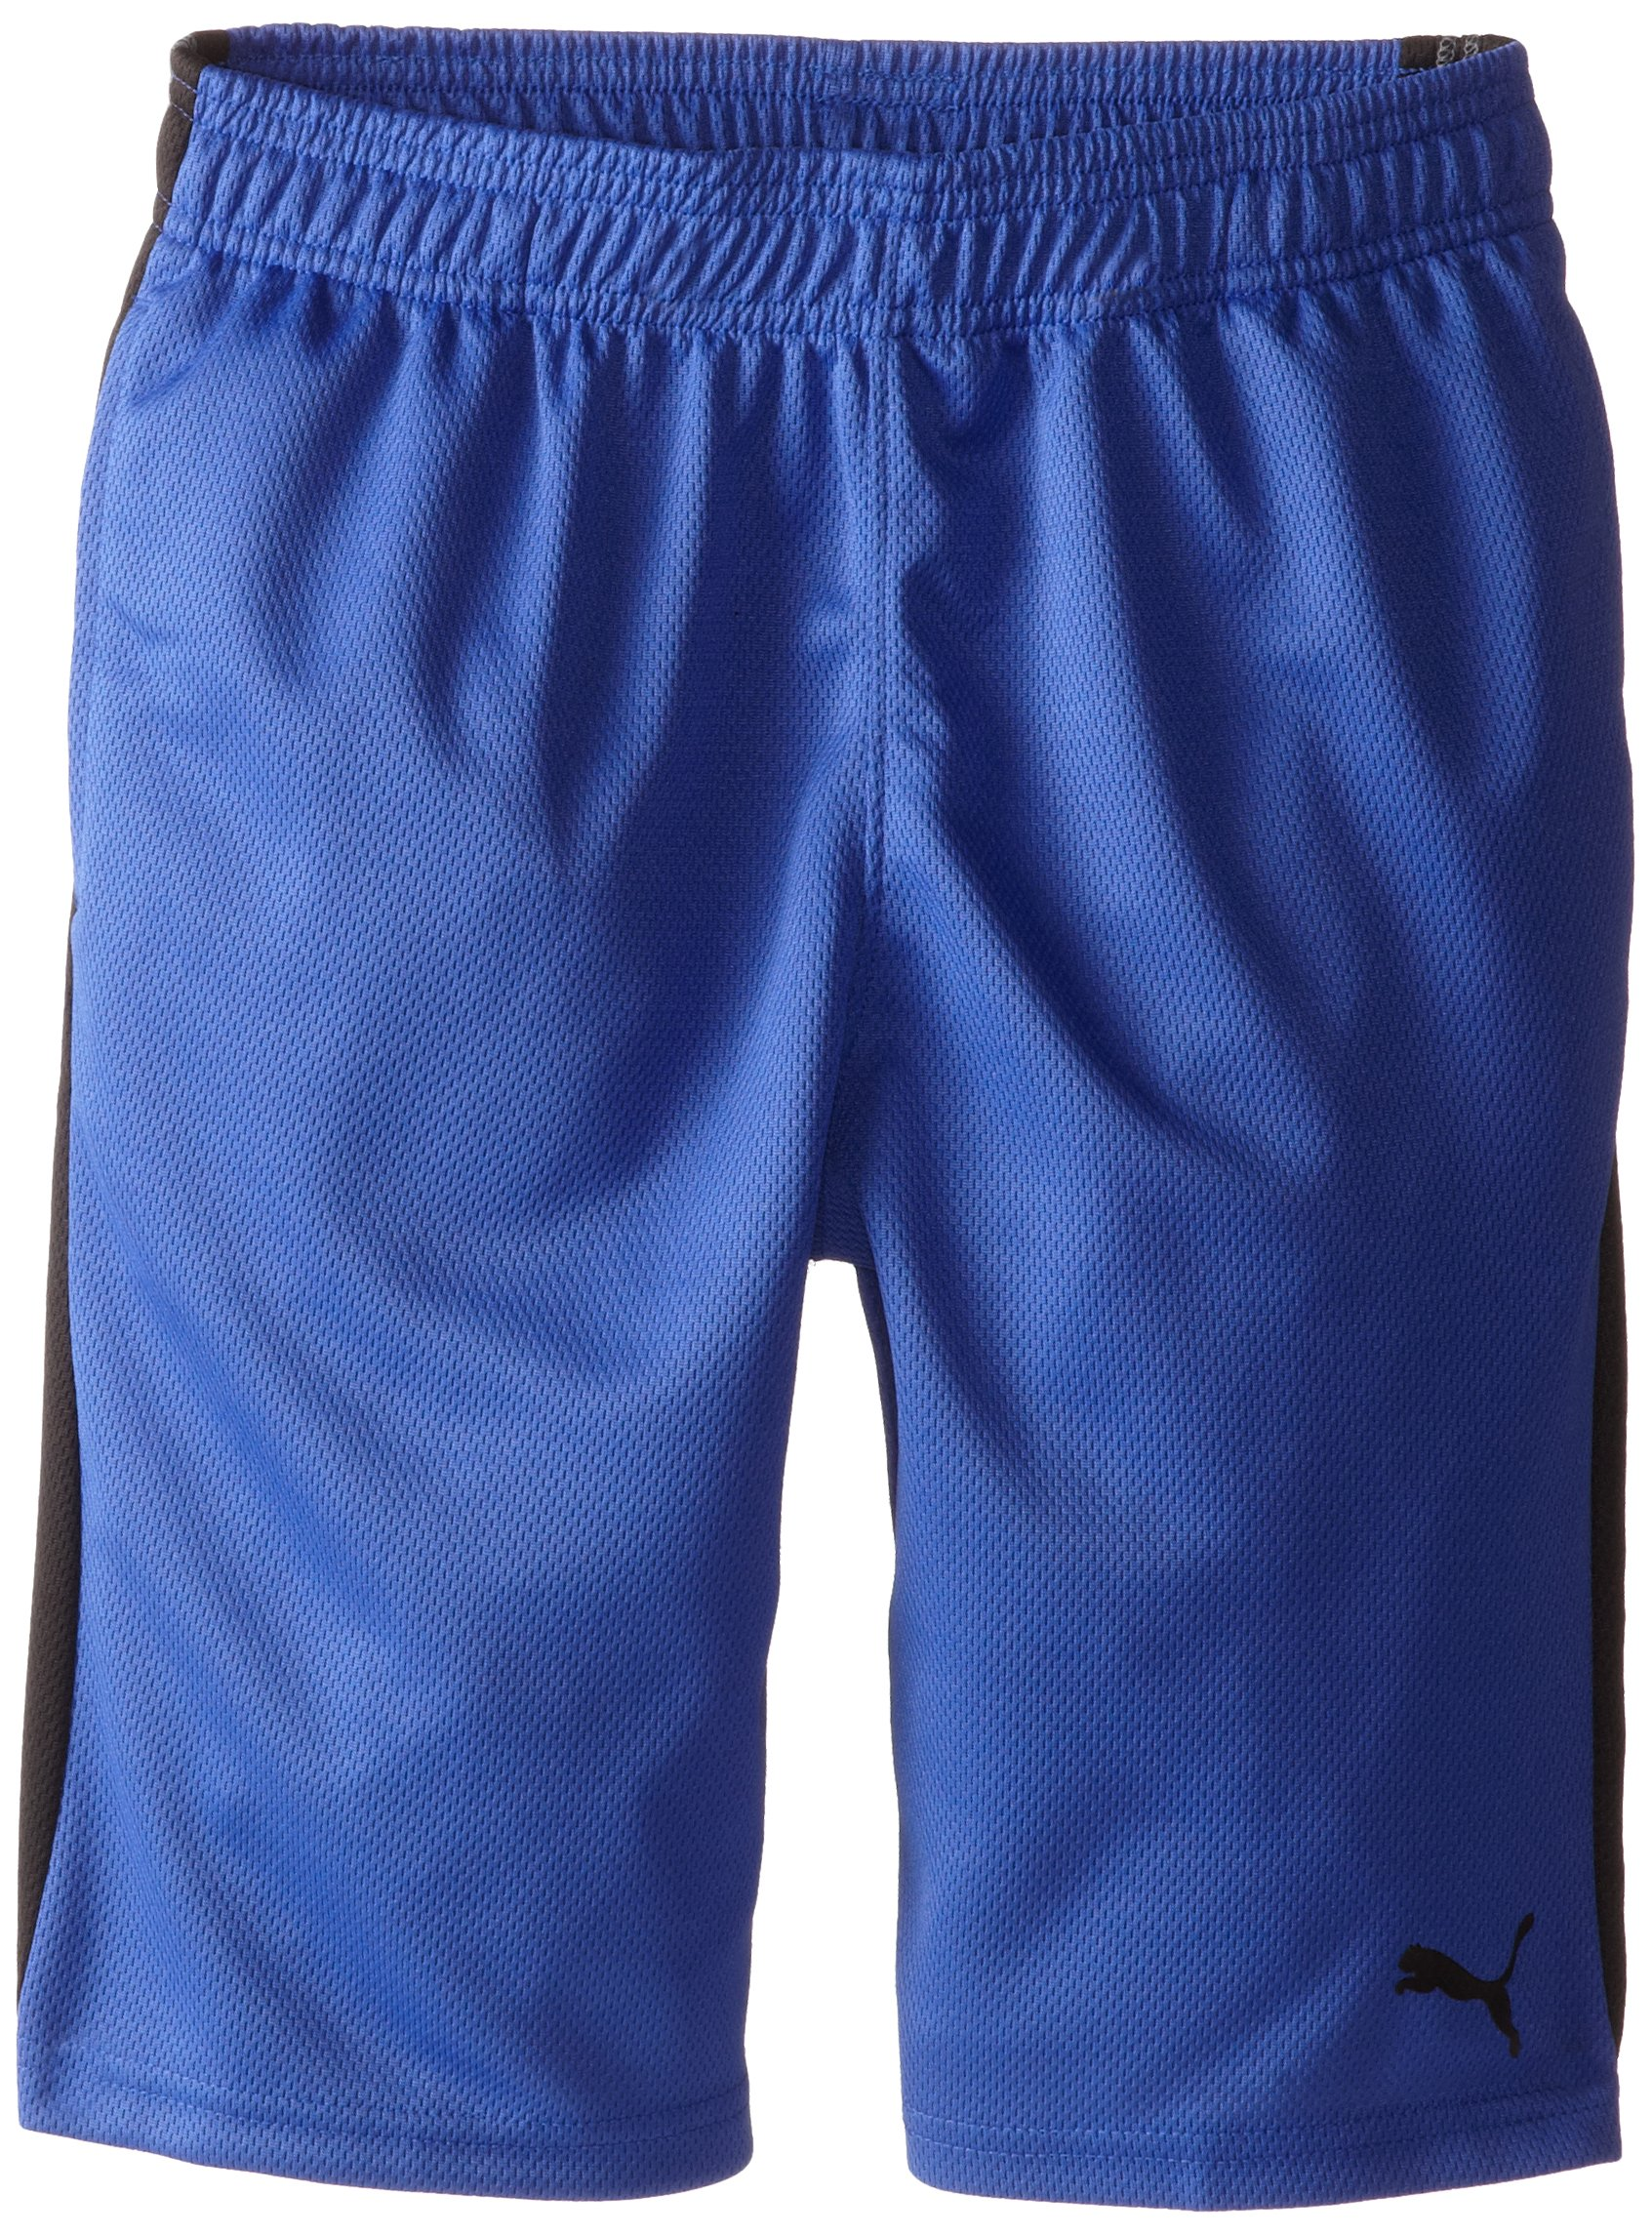 PUMA Big Boys' Active Short, Royal, 8 (Small) by PUMA